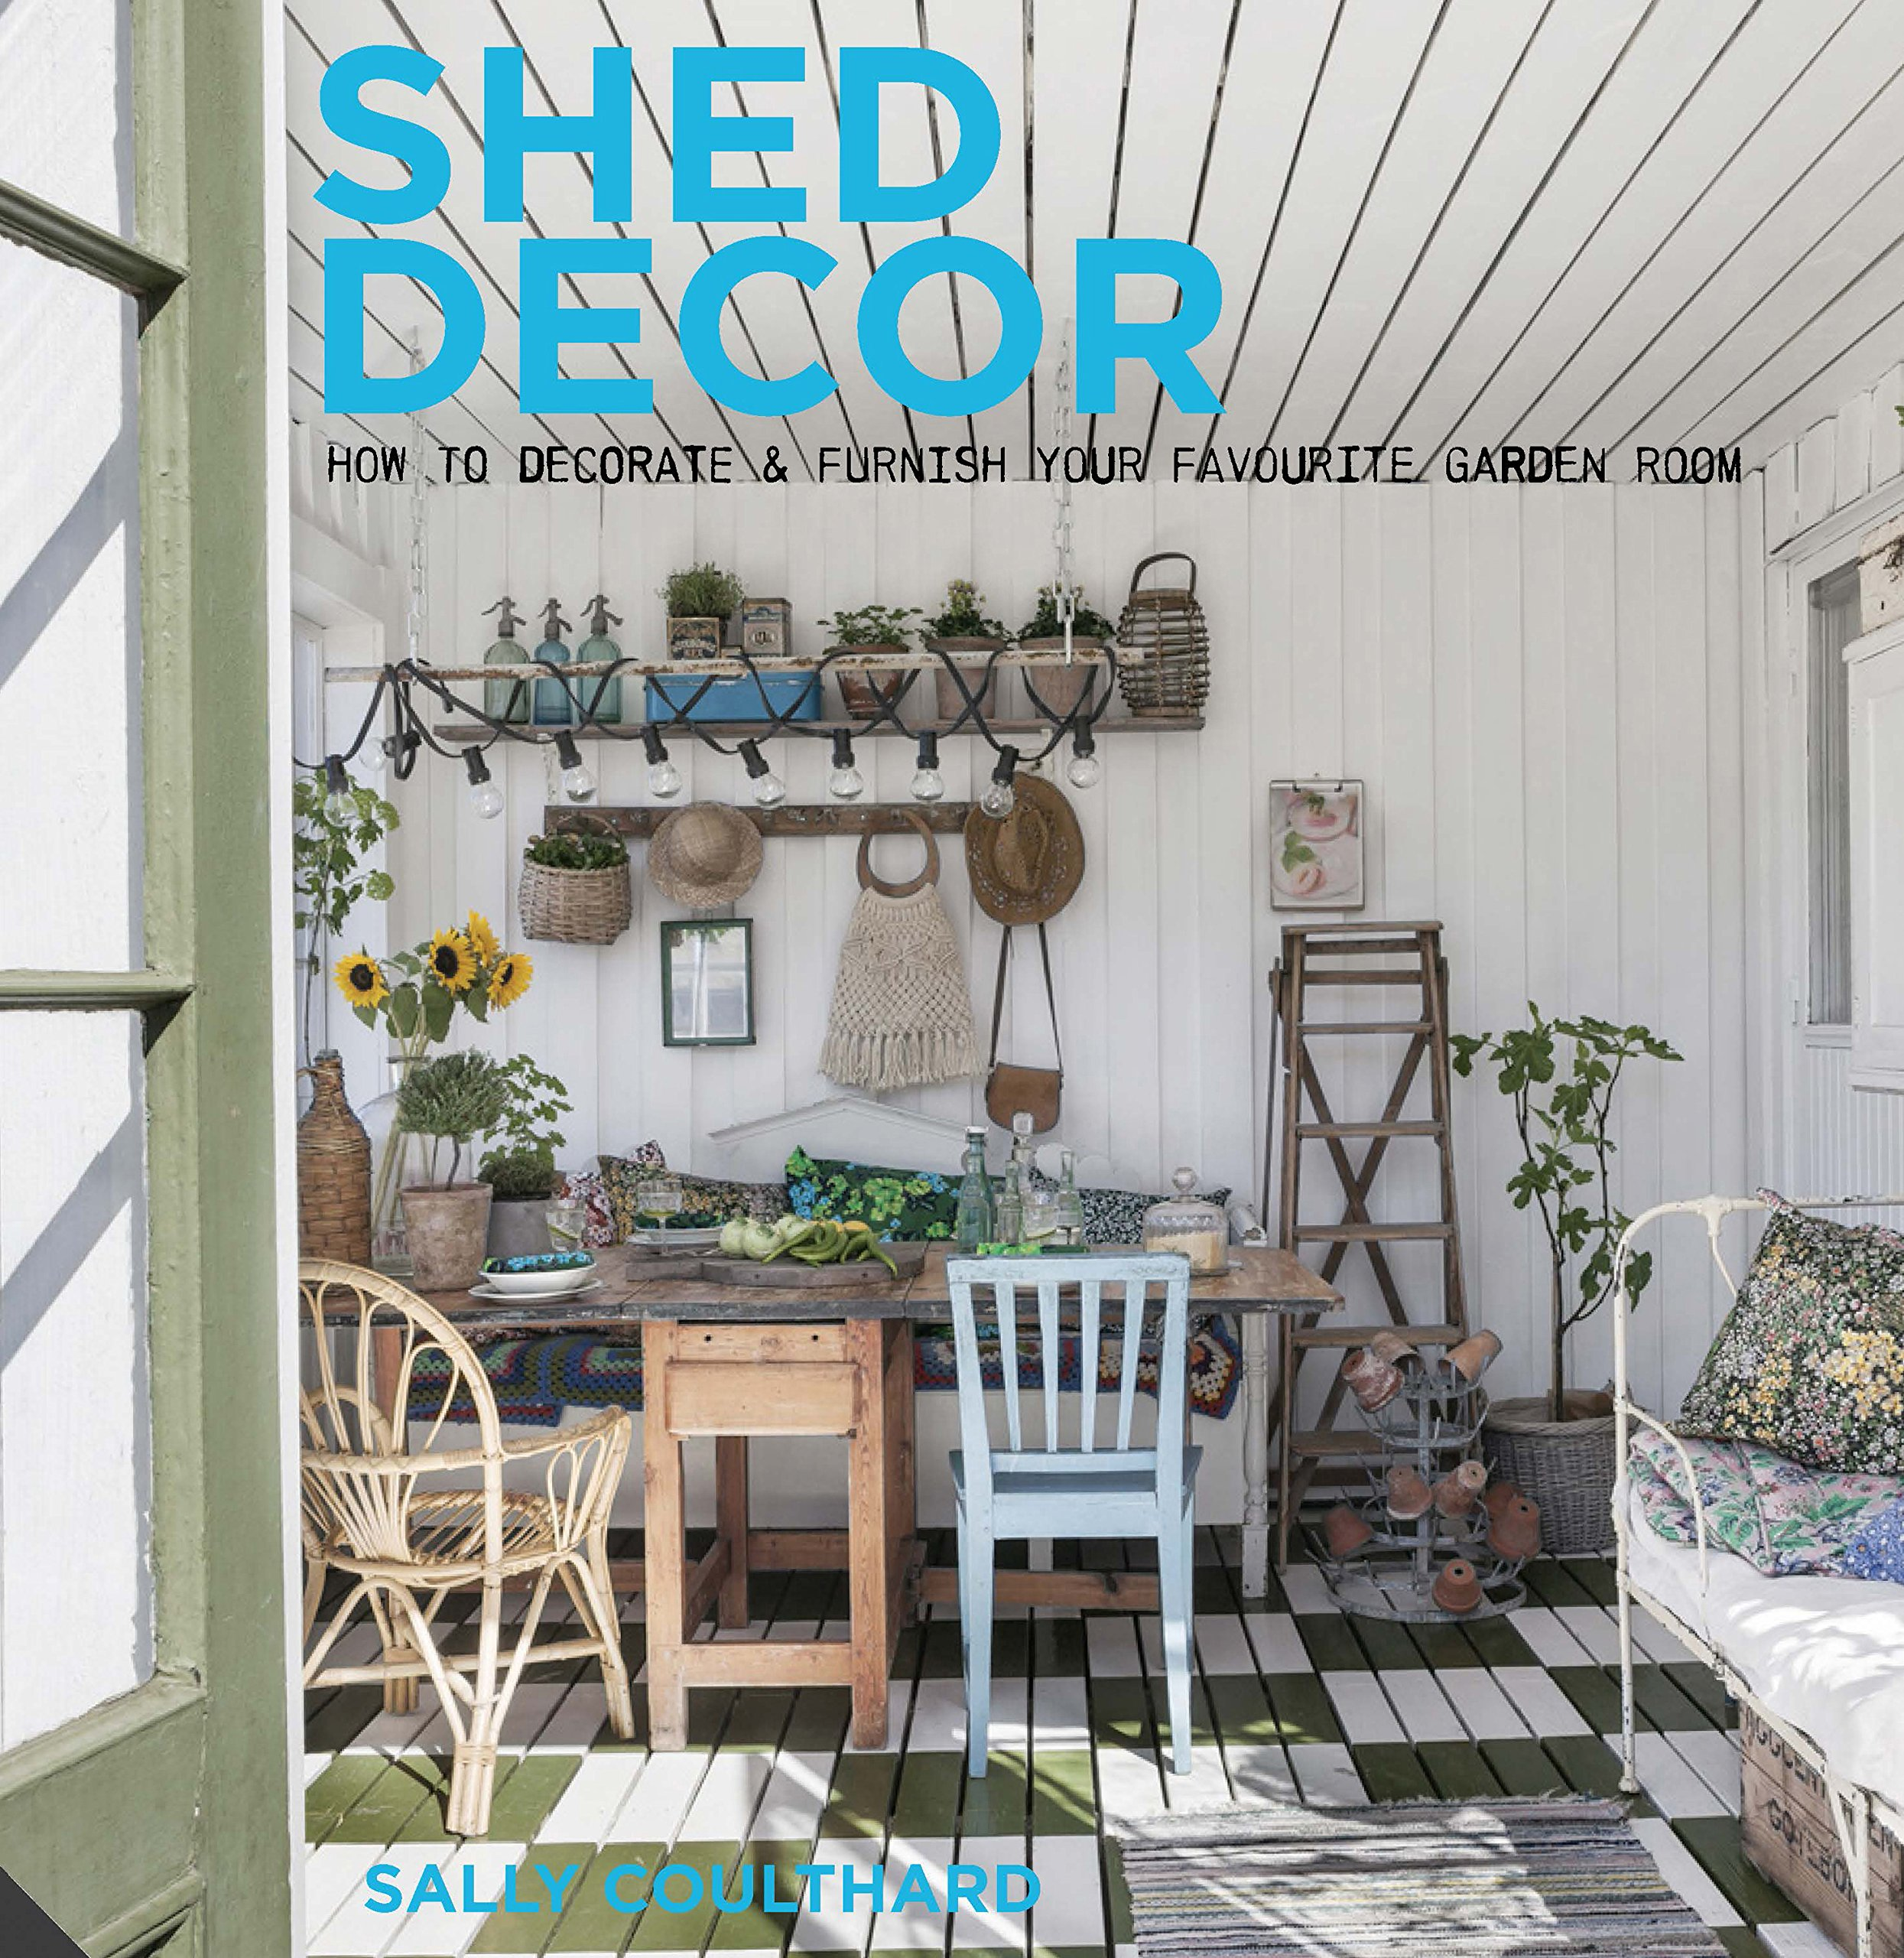 Shed decor how to decorate and furnish your favourite garden room amazon co uk sally coulthard 9781909342804 books